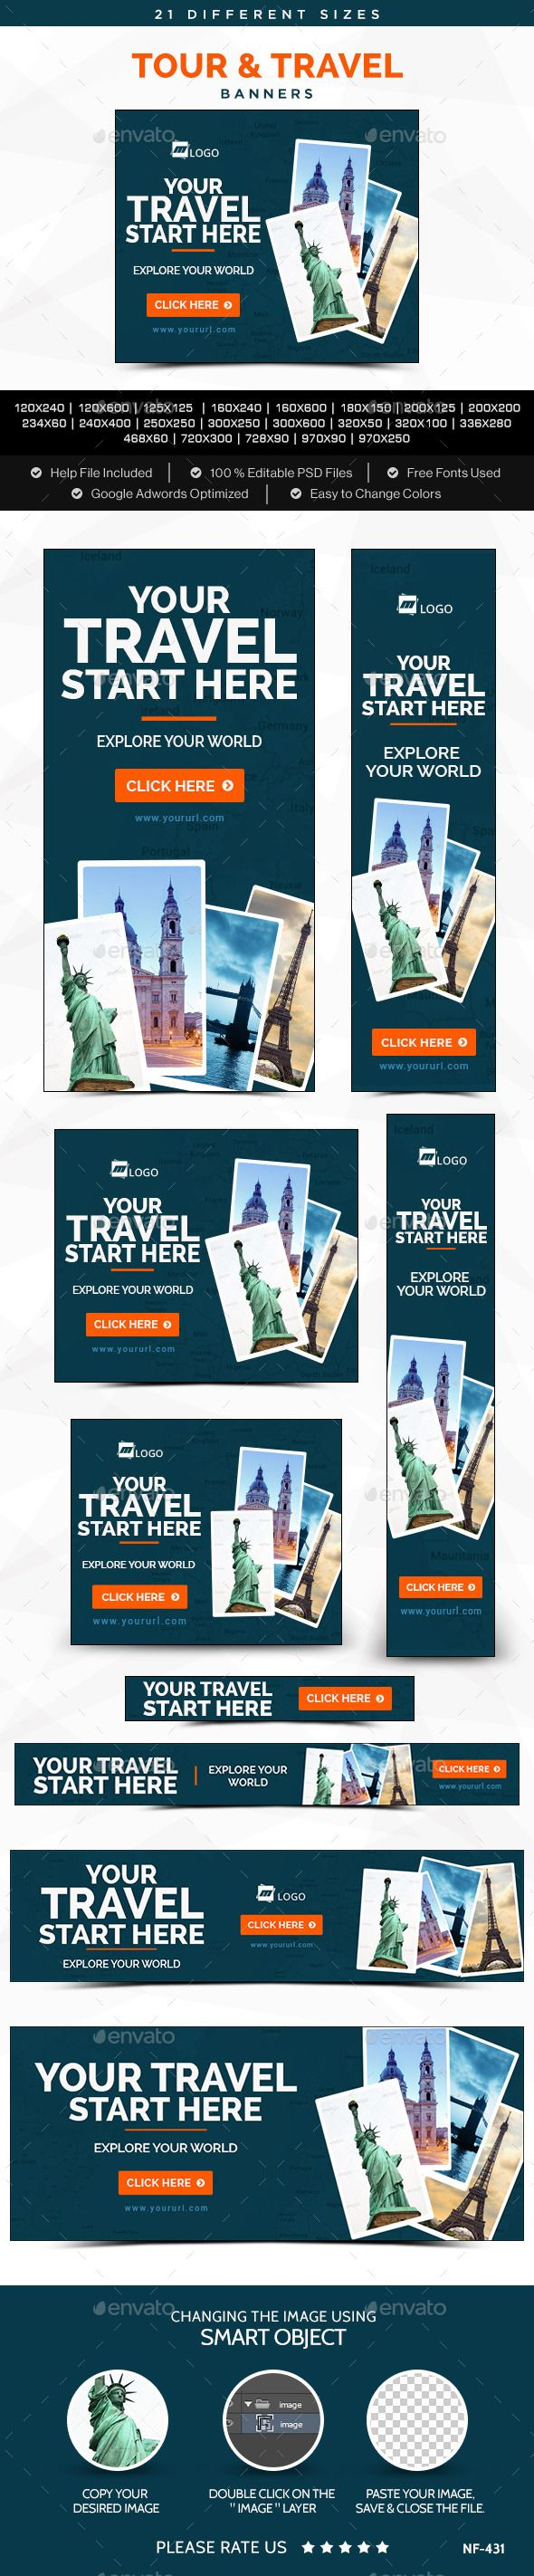 Tour & Travels Banners Template #design #banners #web Download: http://graphicriver.net/item/tour-travels-banners/11819798?ref=ksioks